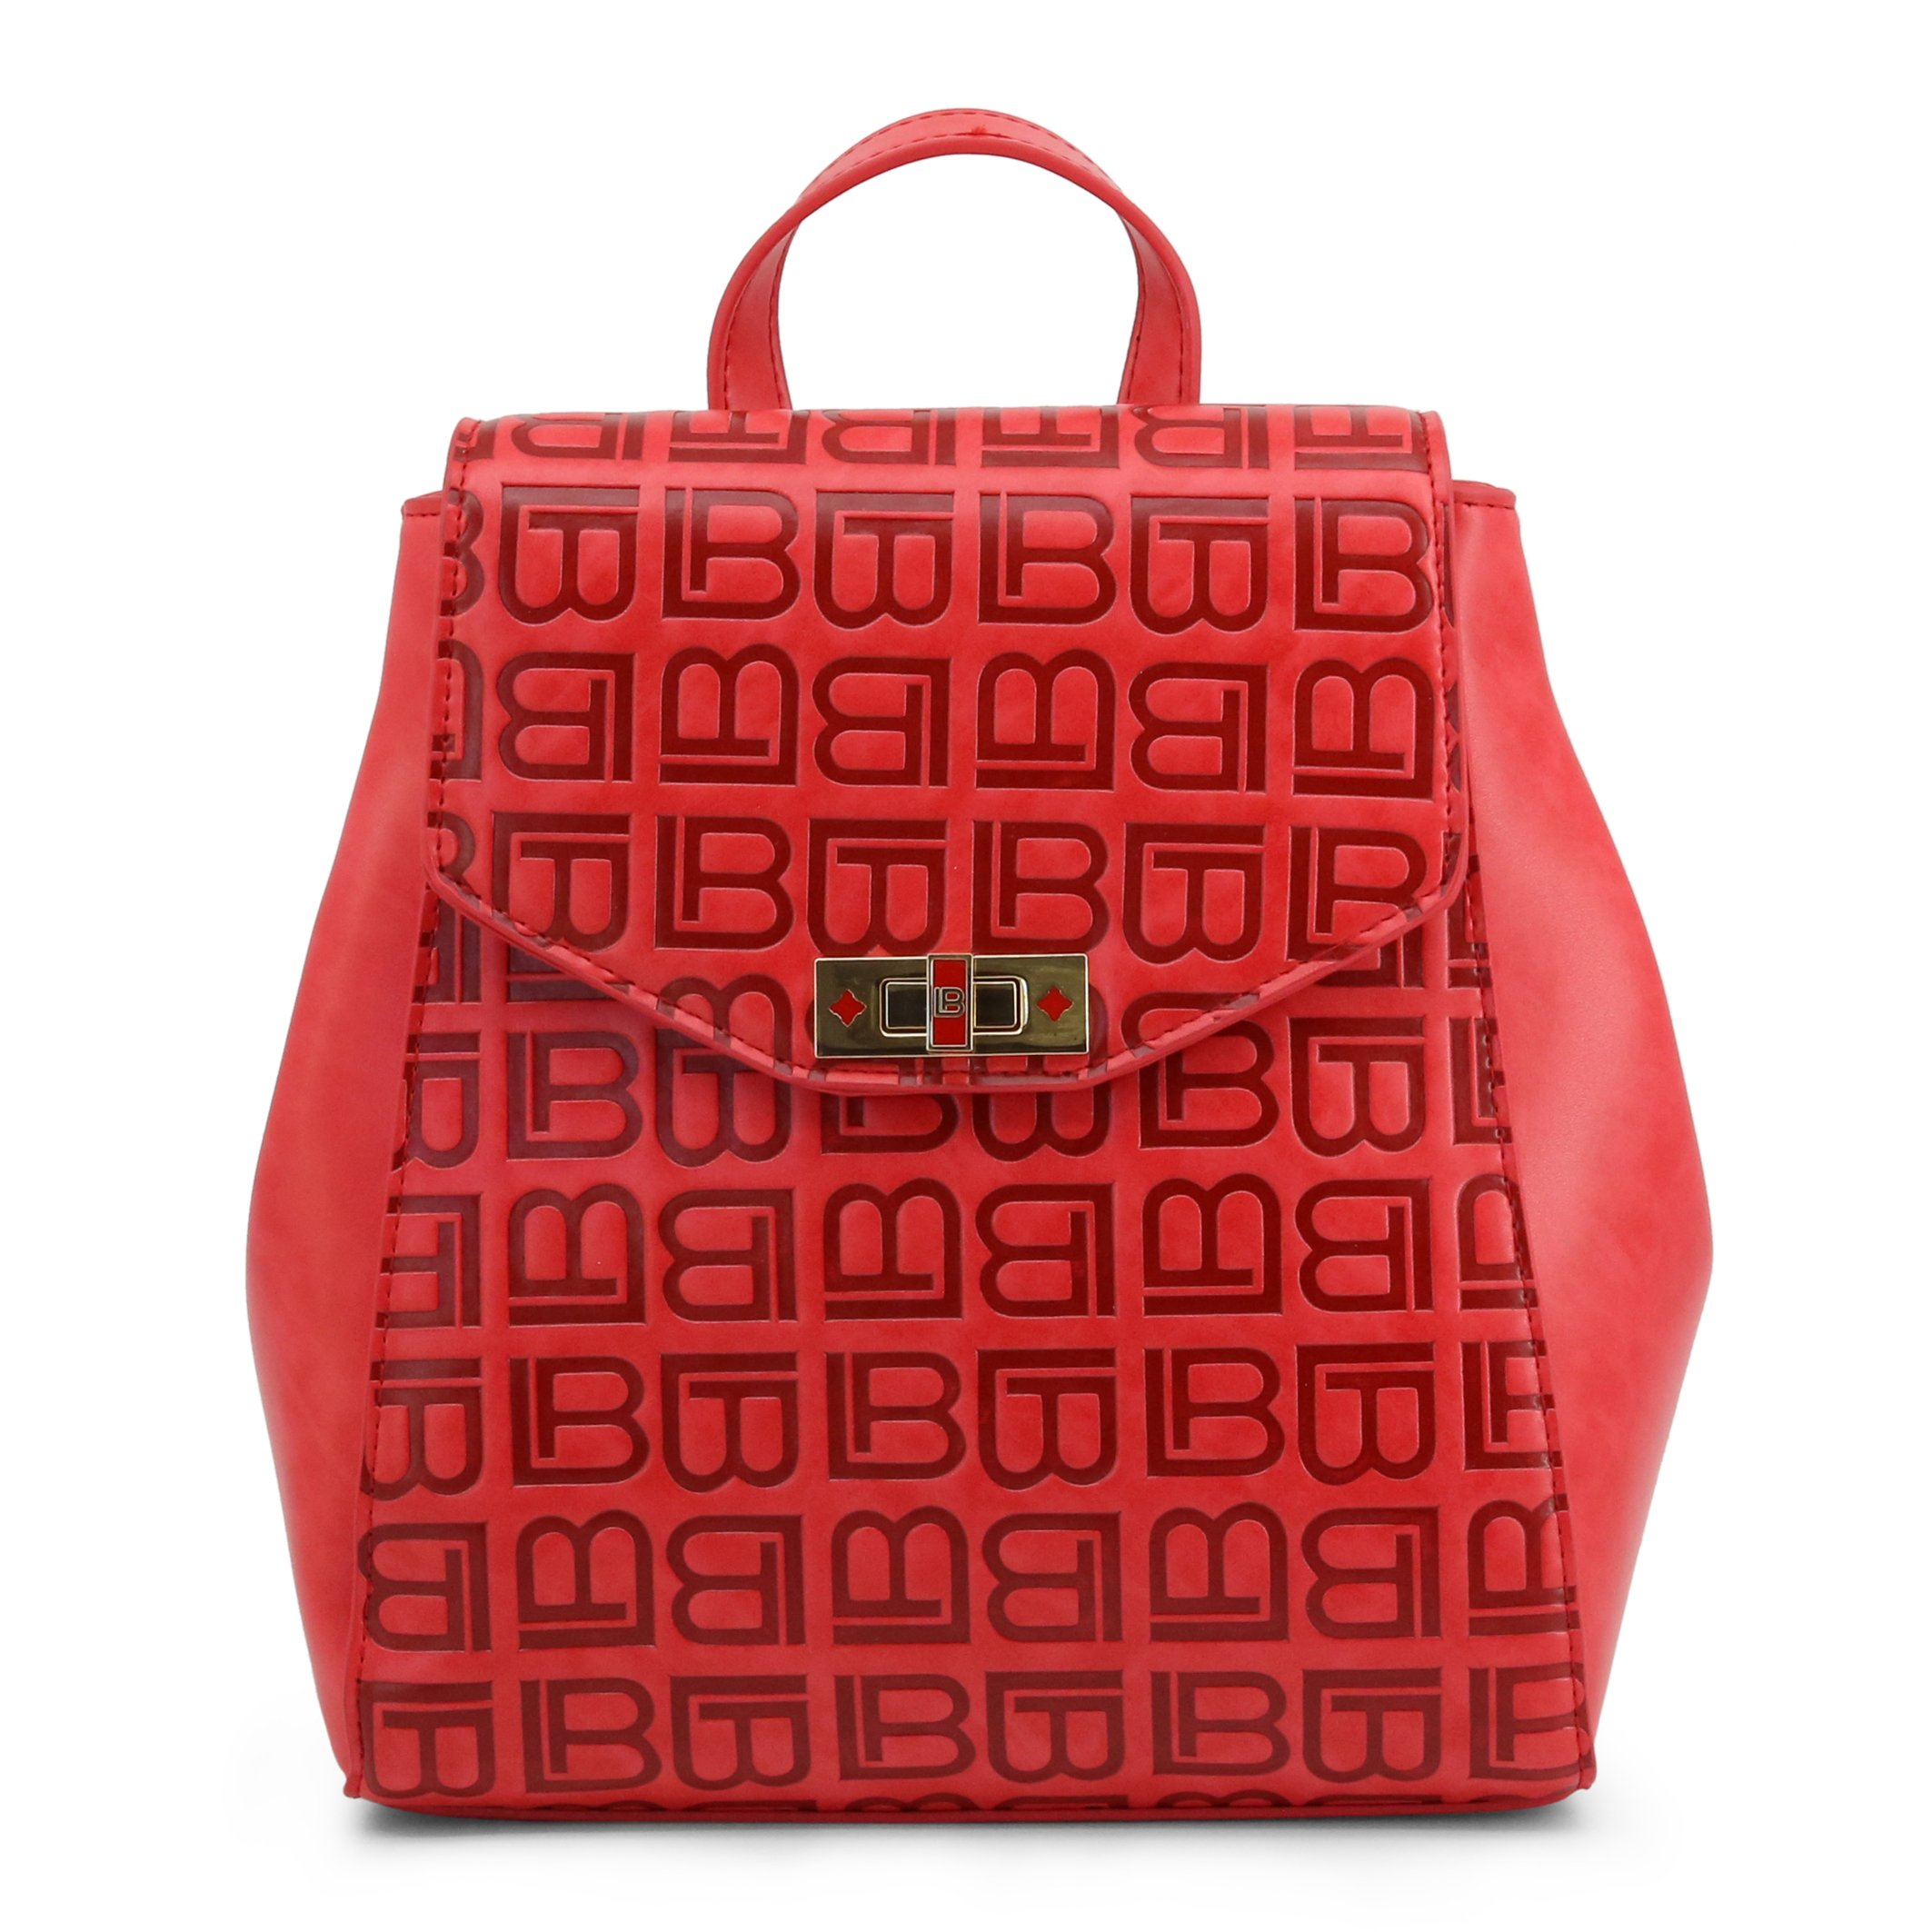 Laura Biagiotti Women's Backpack Various Colours Rossy_114-1 - red NOSIZE